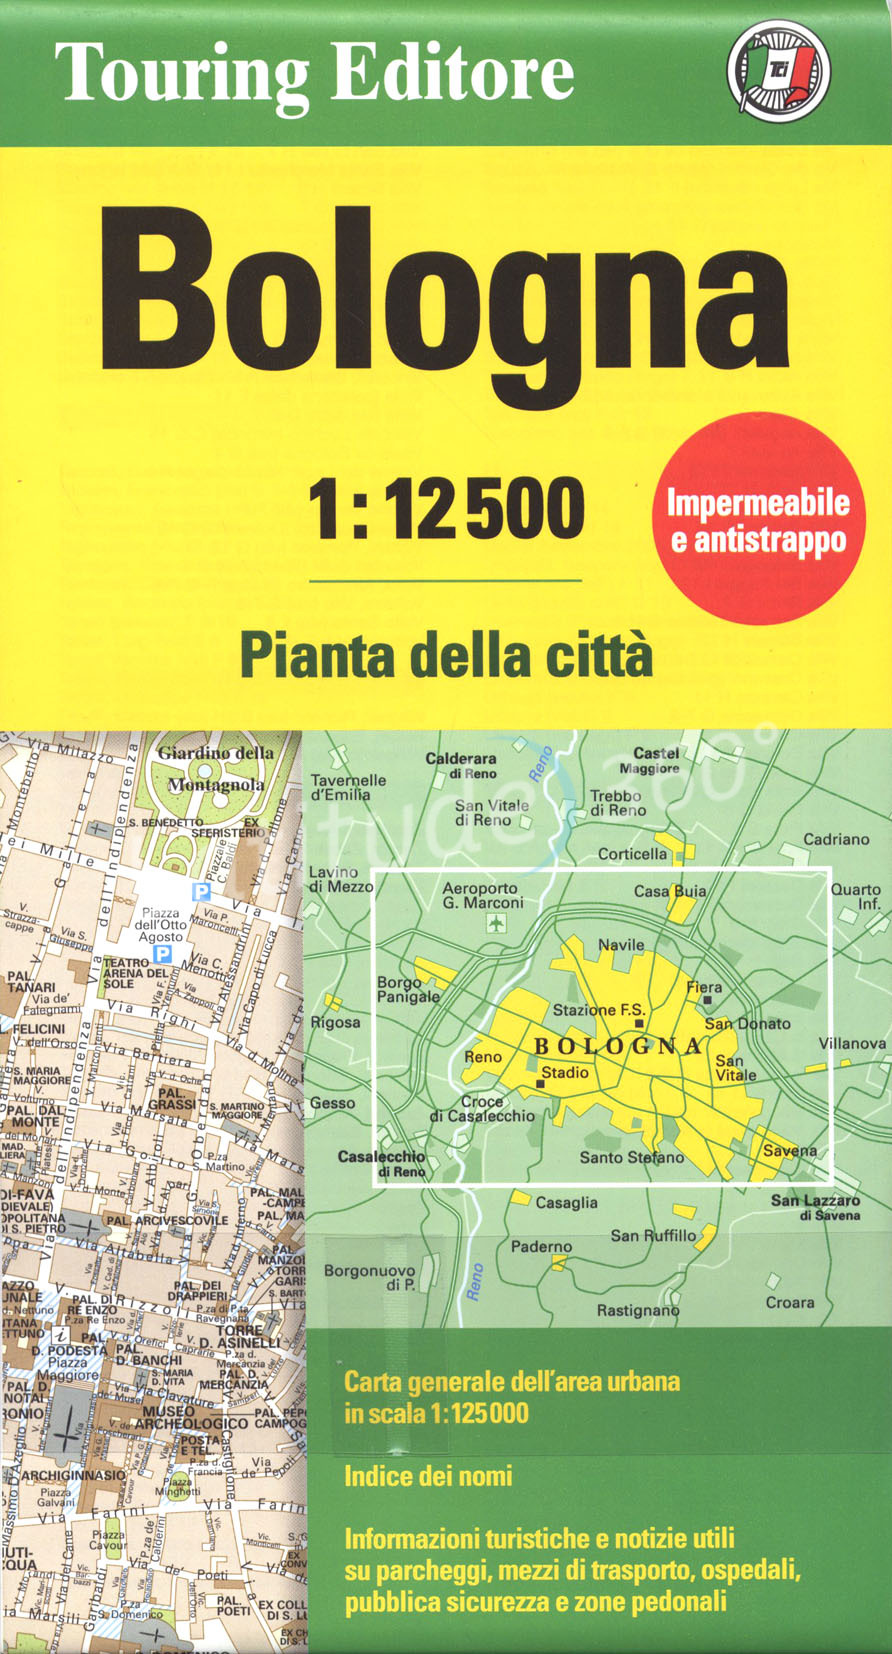 Plattegrond  - Stadsplattegrond Bologna   Touring Club Italiano